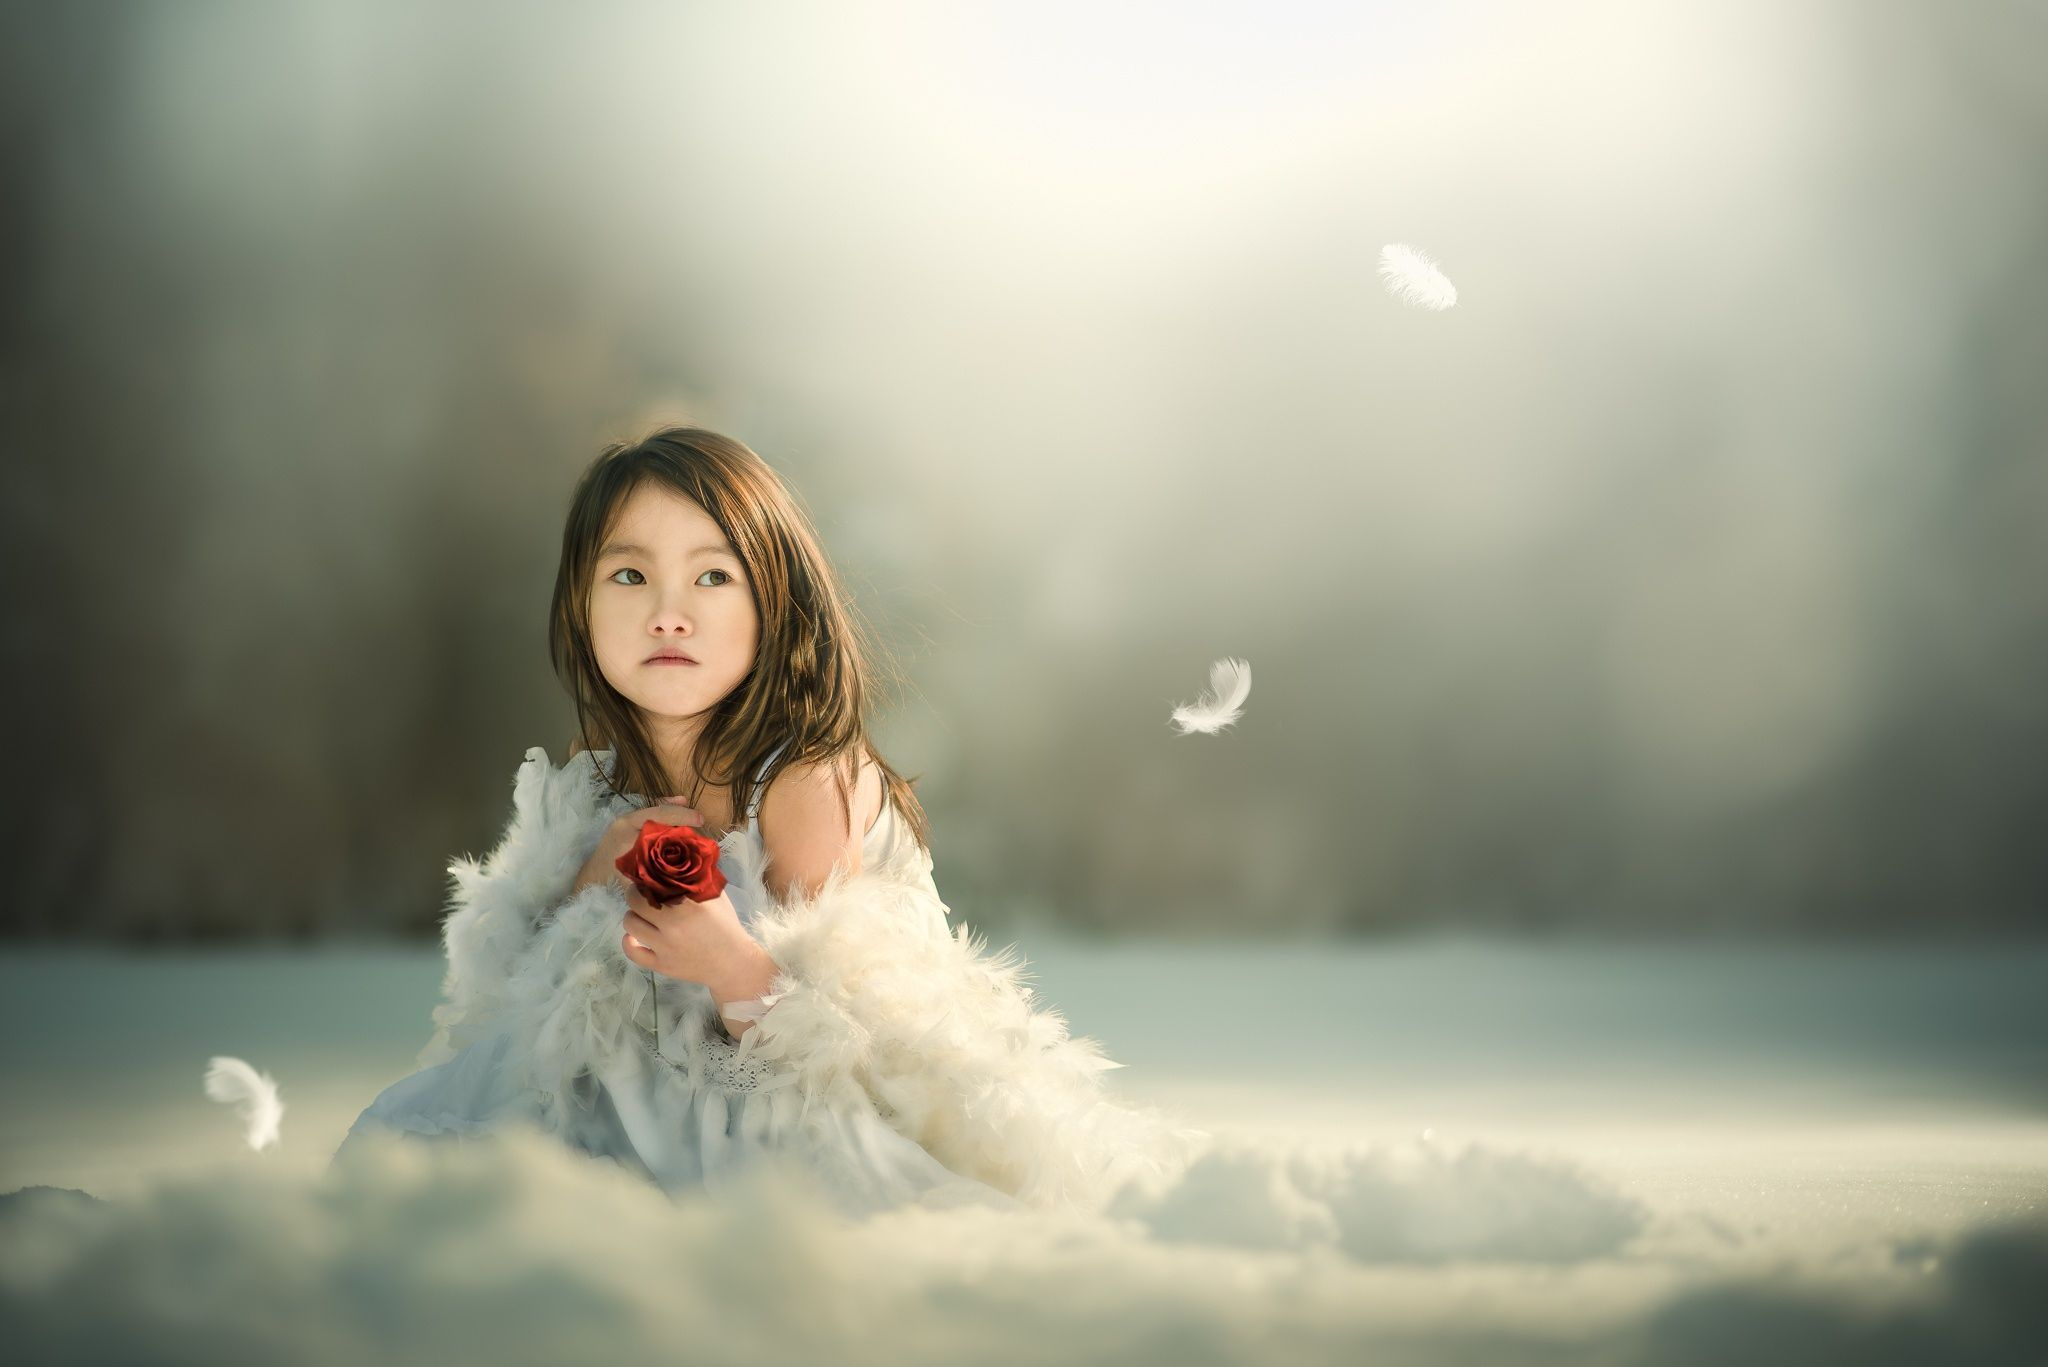 Little girl/ Almost frozen by Zeb Siong on 500px